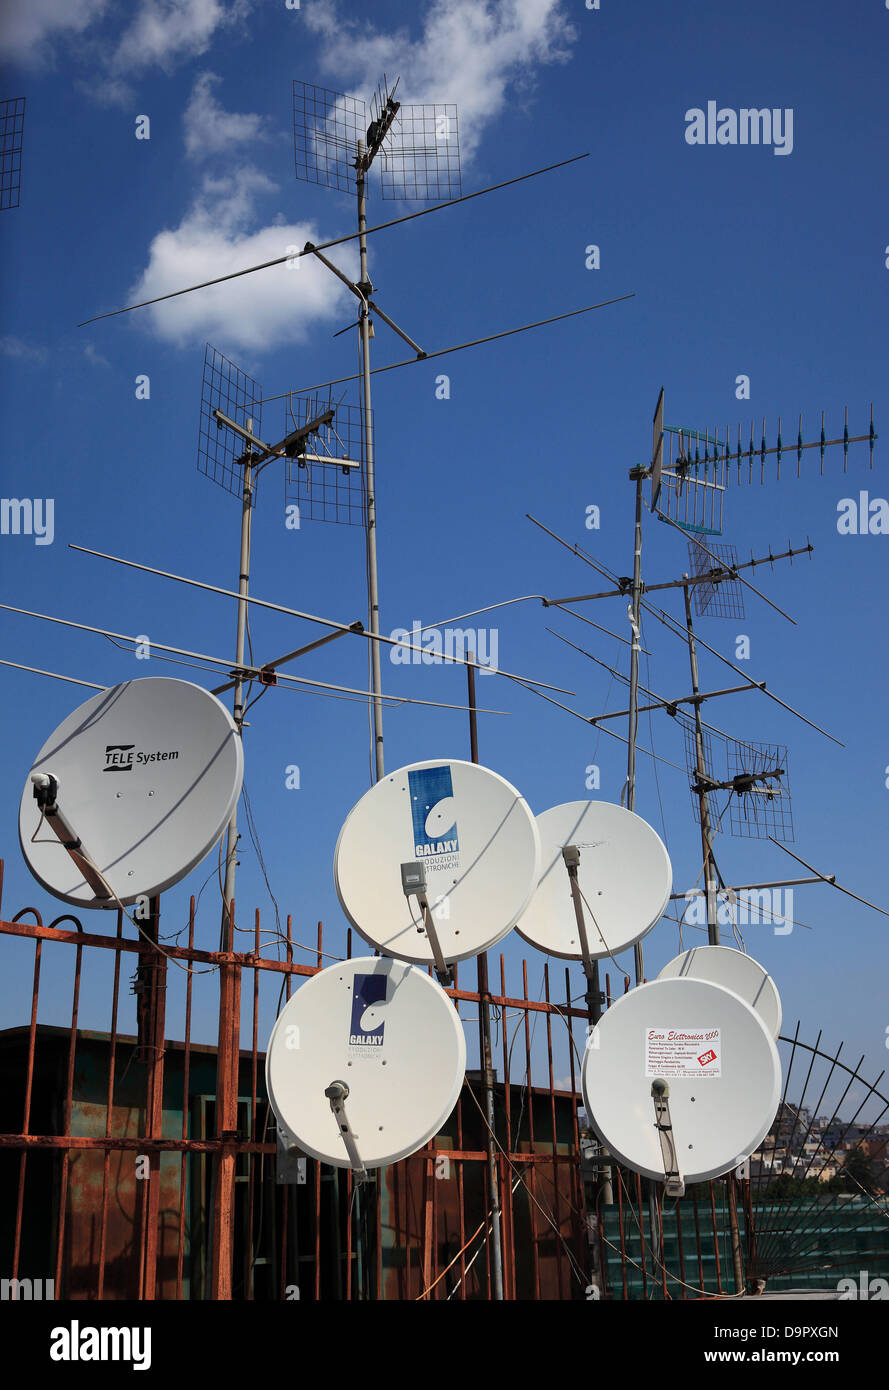 Antenna Collection over the rooftops of Naples, Campania, Italy - Stock Image